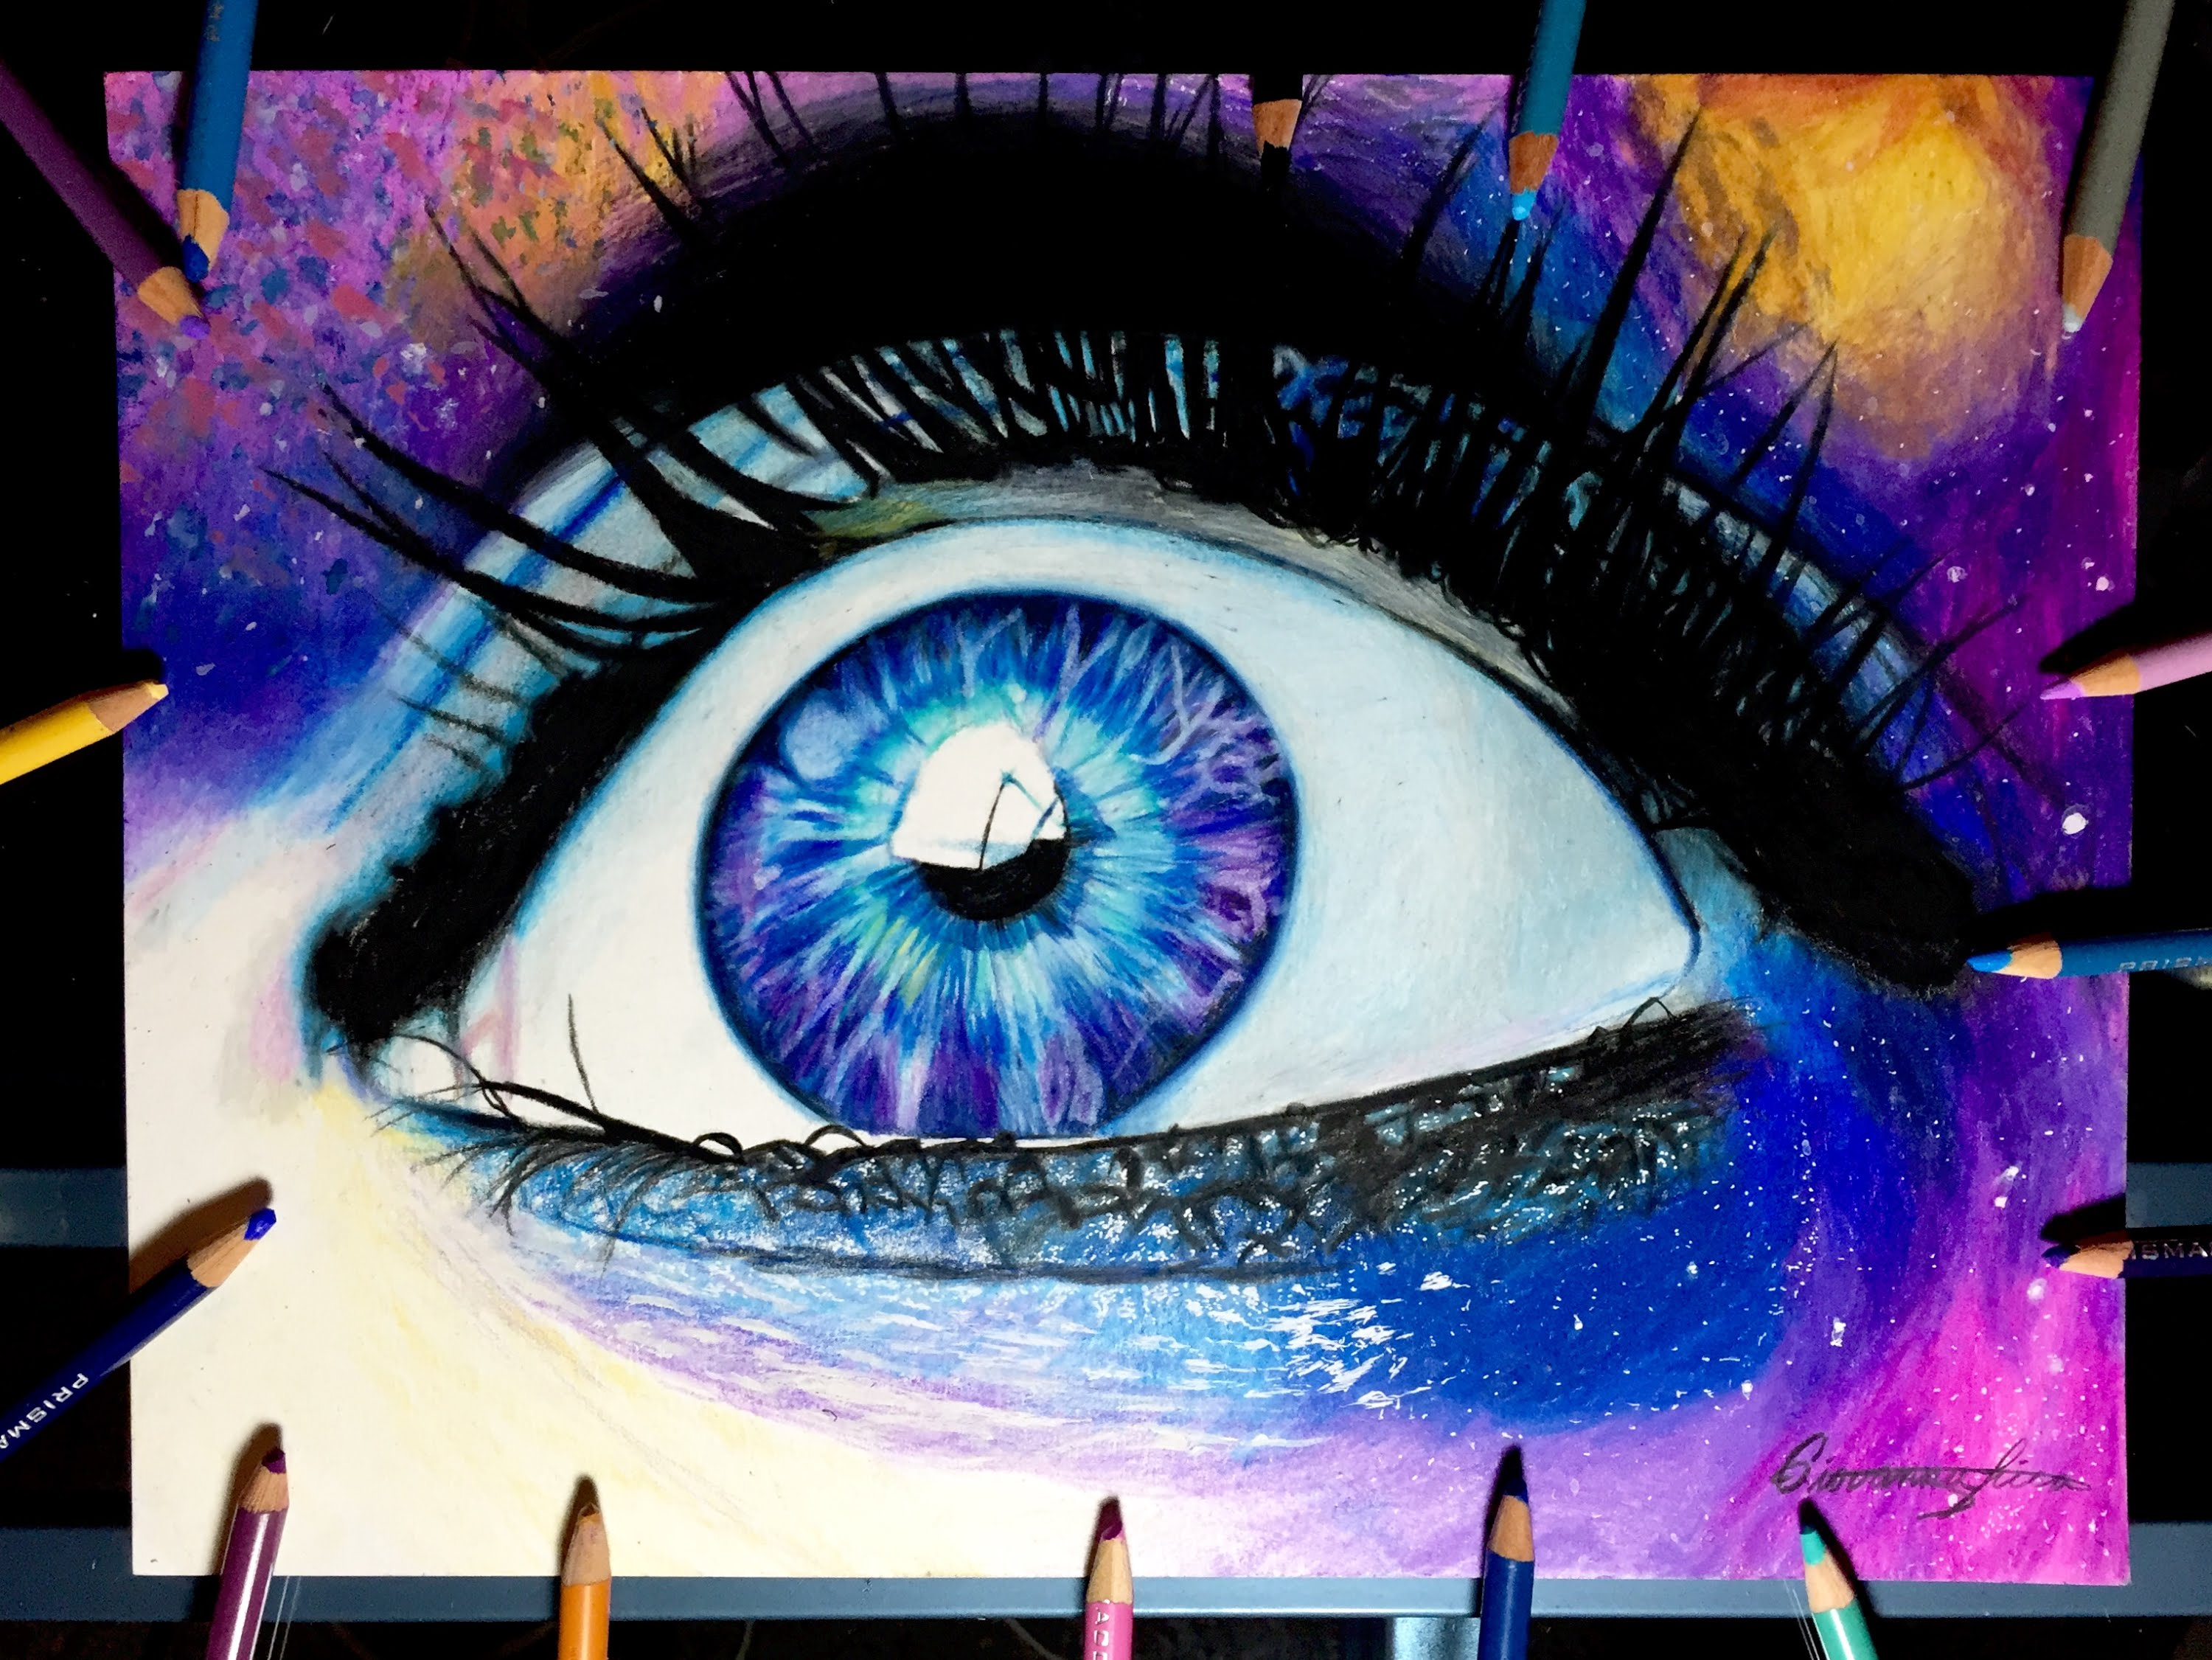 Drawn galaxy Timelapse eye galaxy drawing drawing